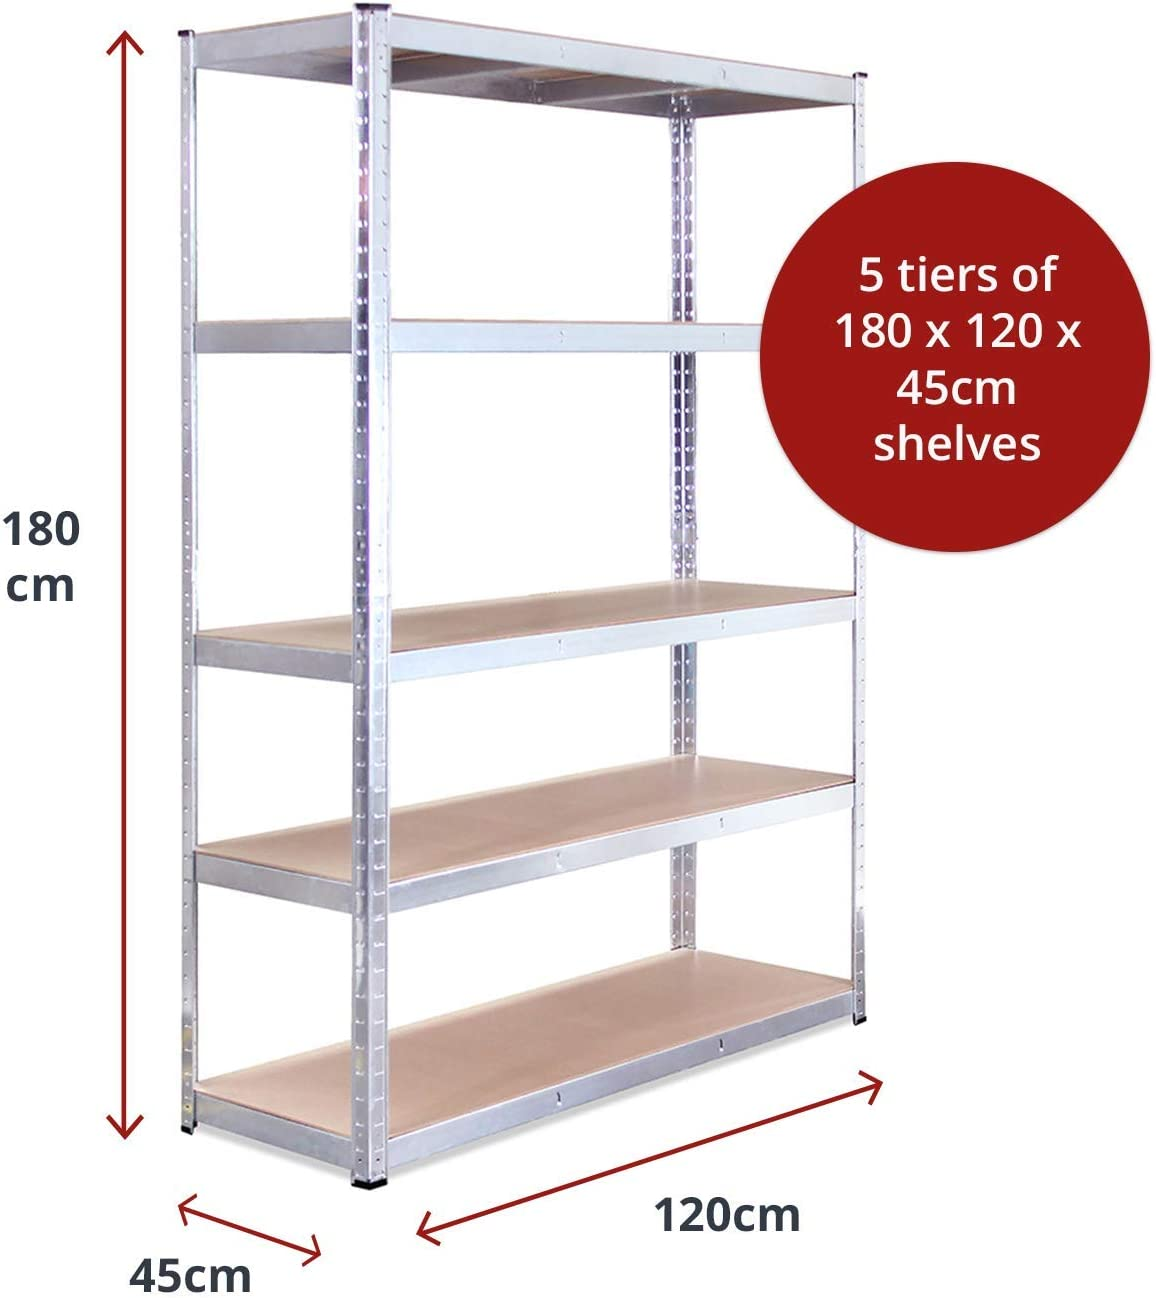 Galvanised Steel Shed - Workshop Office 5 Bay Garage Shelving Units 180 x 120 x 45cm 5 Tier 5 Year Warranty Heavy Duty Racking Shelves for Storage 175KG Per Shelf 875KG Capacity